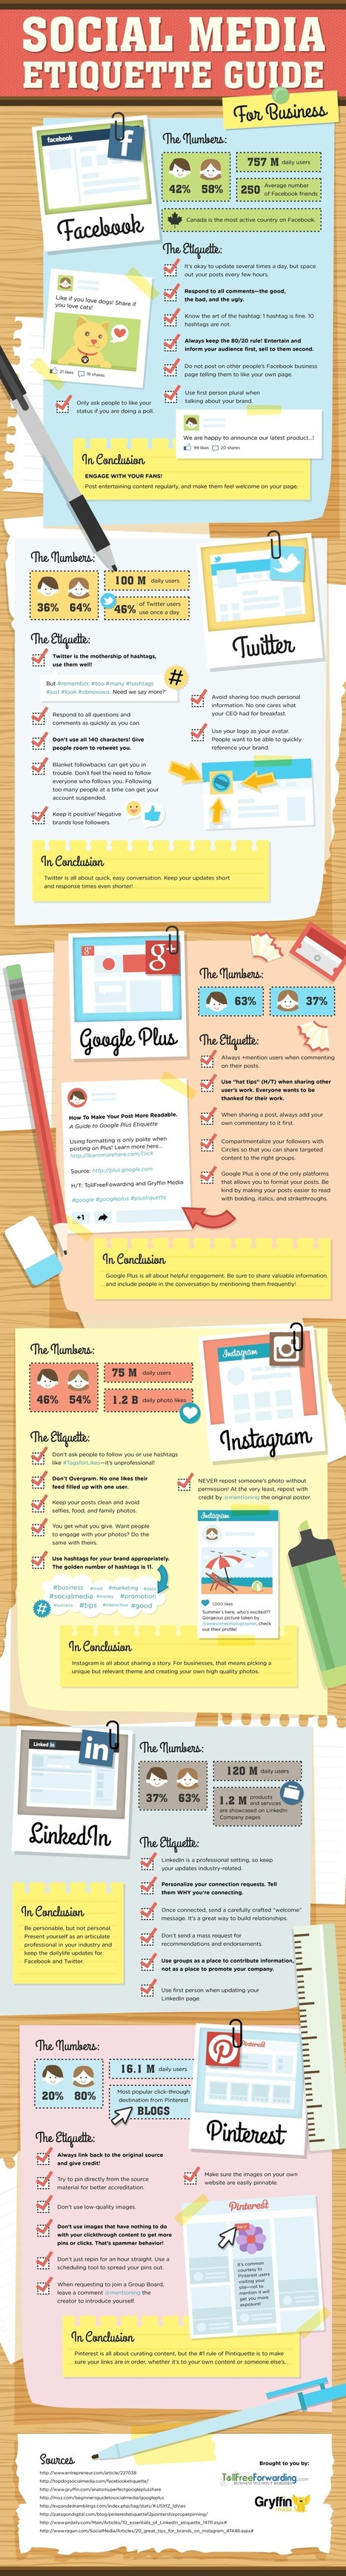 38 Tips on Social Media Etiquette for Business #infographic | Events | Scoop.it